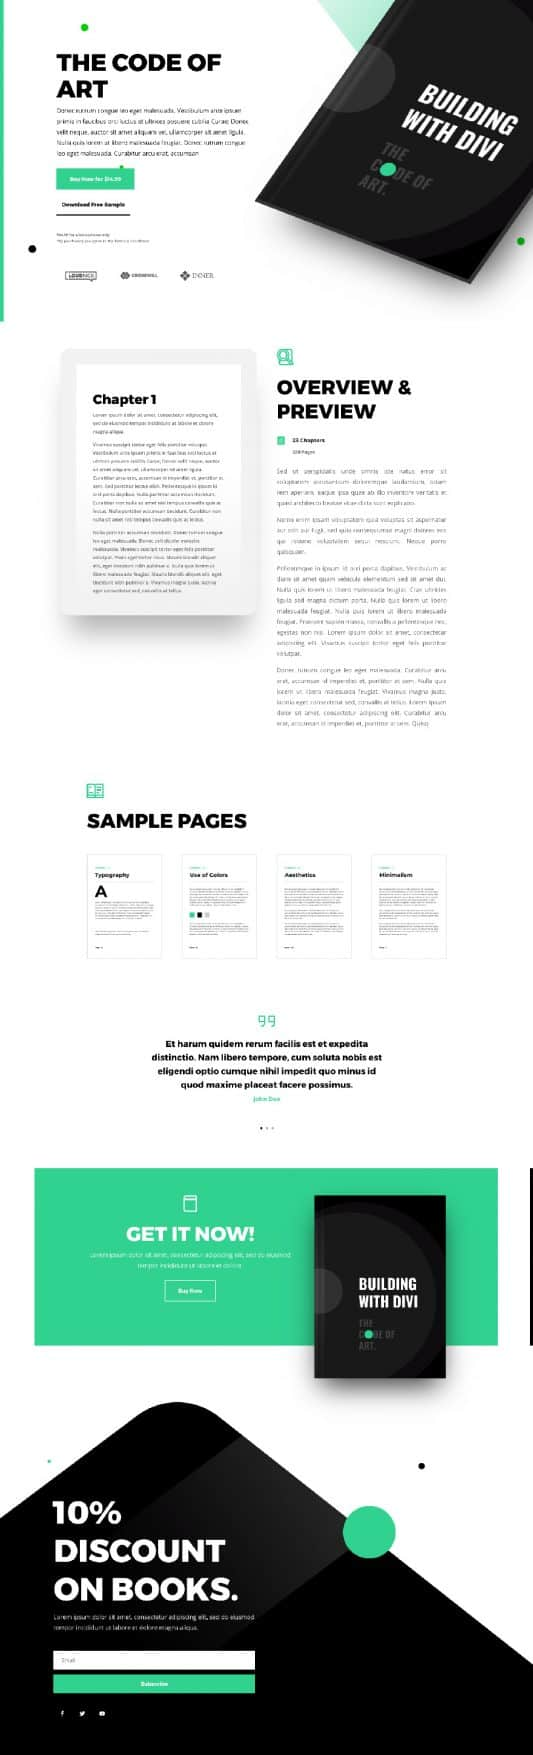 Ebook Product Page Style 1